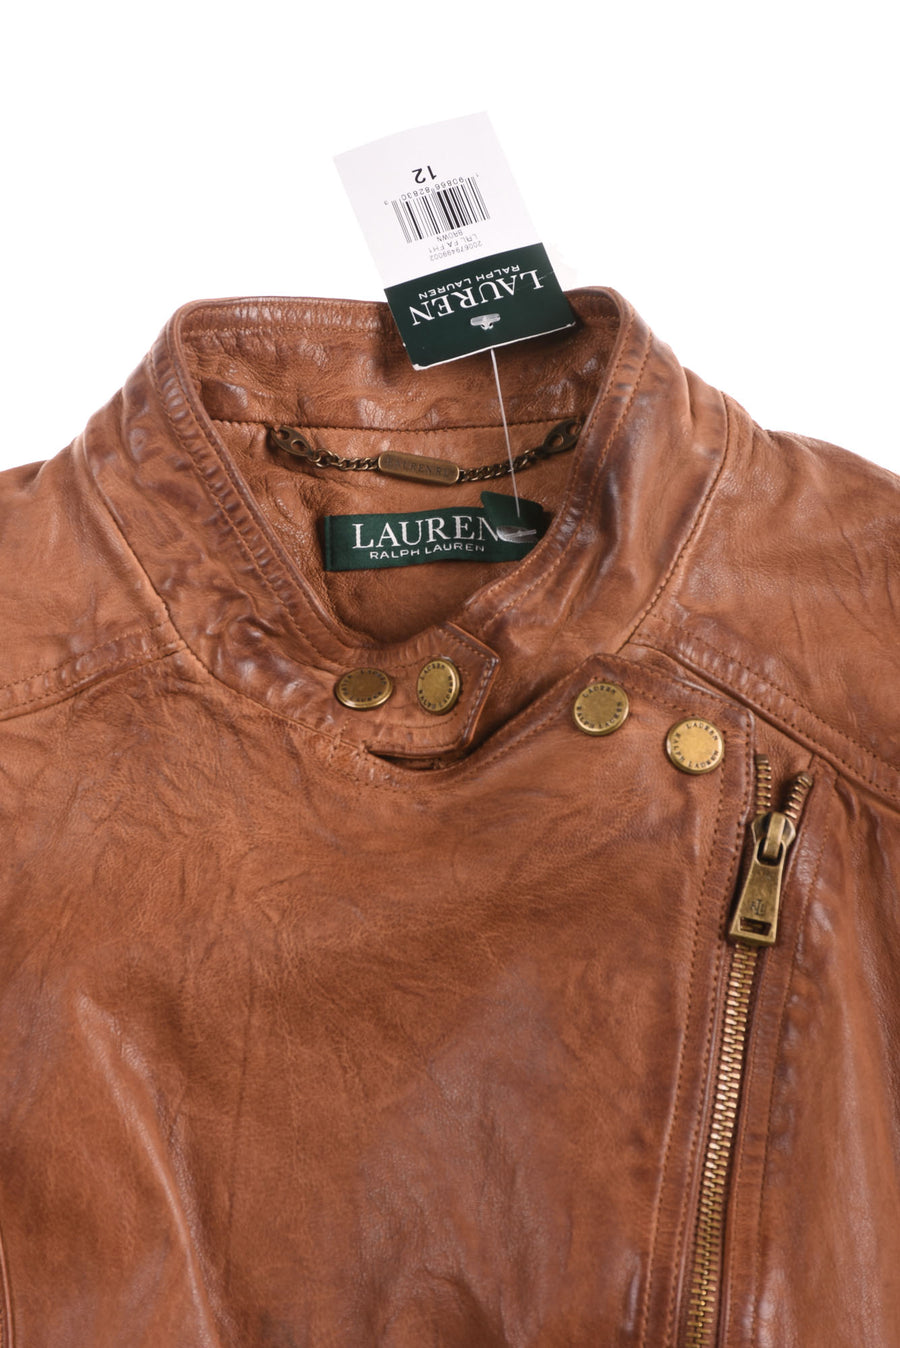 NEW Lauren Ralph Lauren Women's Vest 12 Brown